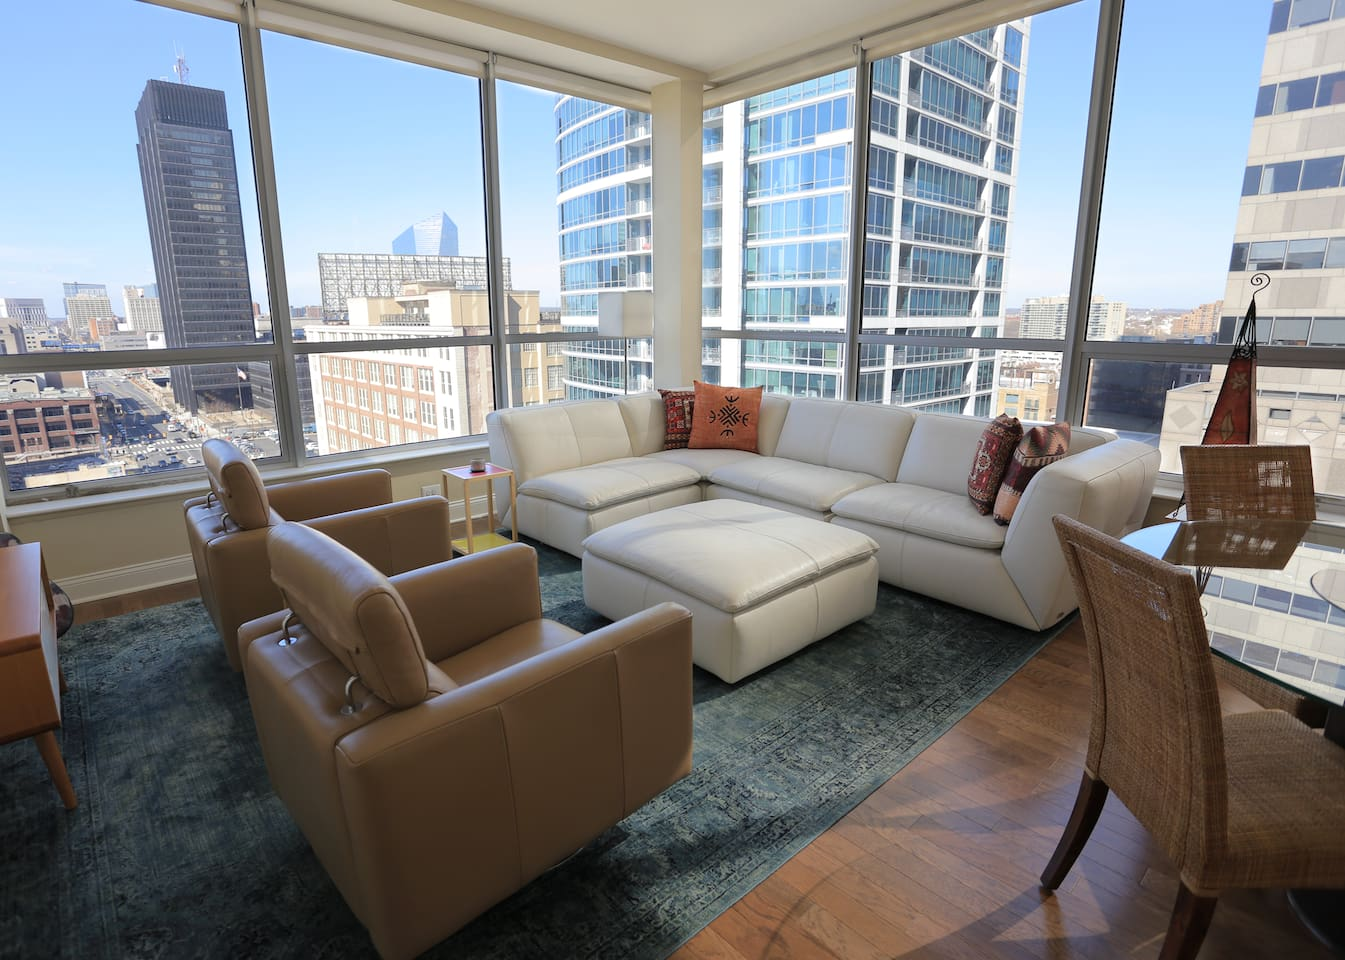 luxurious apartment in the heart of city apartments for rent in